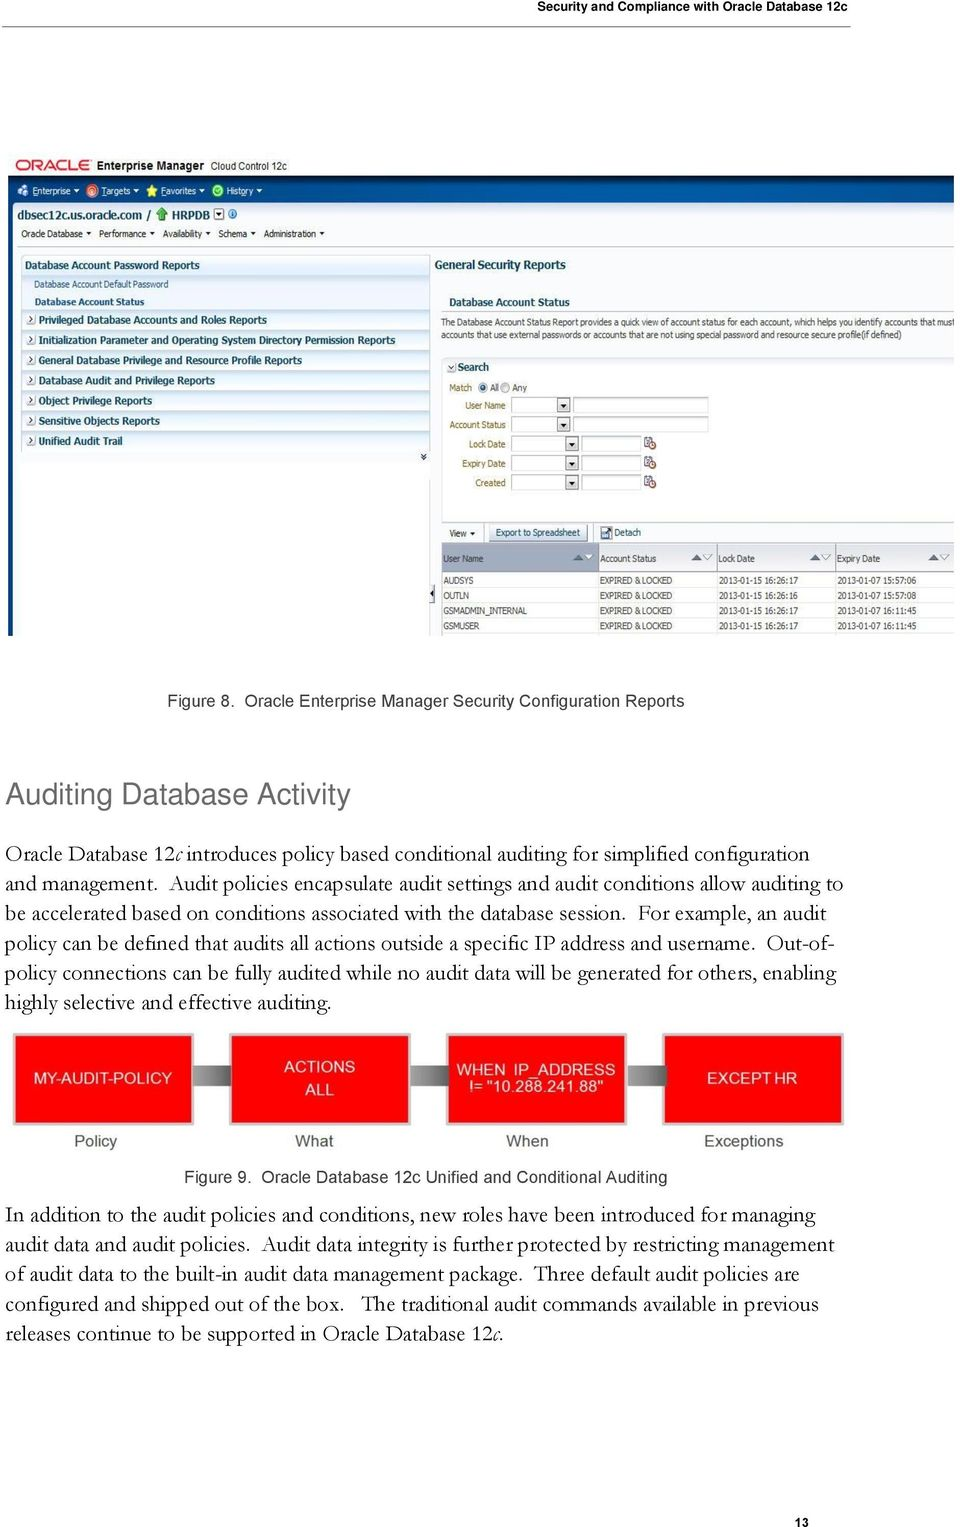 Audit policies encapsulate audit settings and audit conditions allow auditing to be accelerated based on conditions associated with the database session.